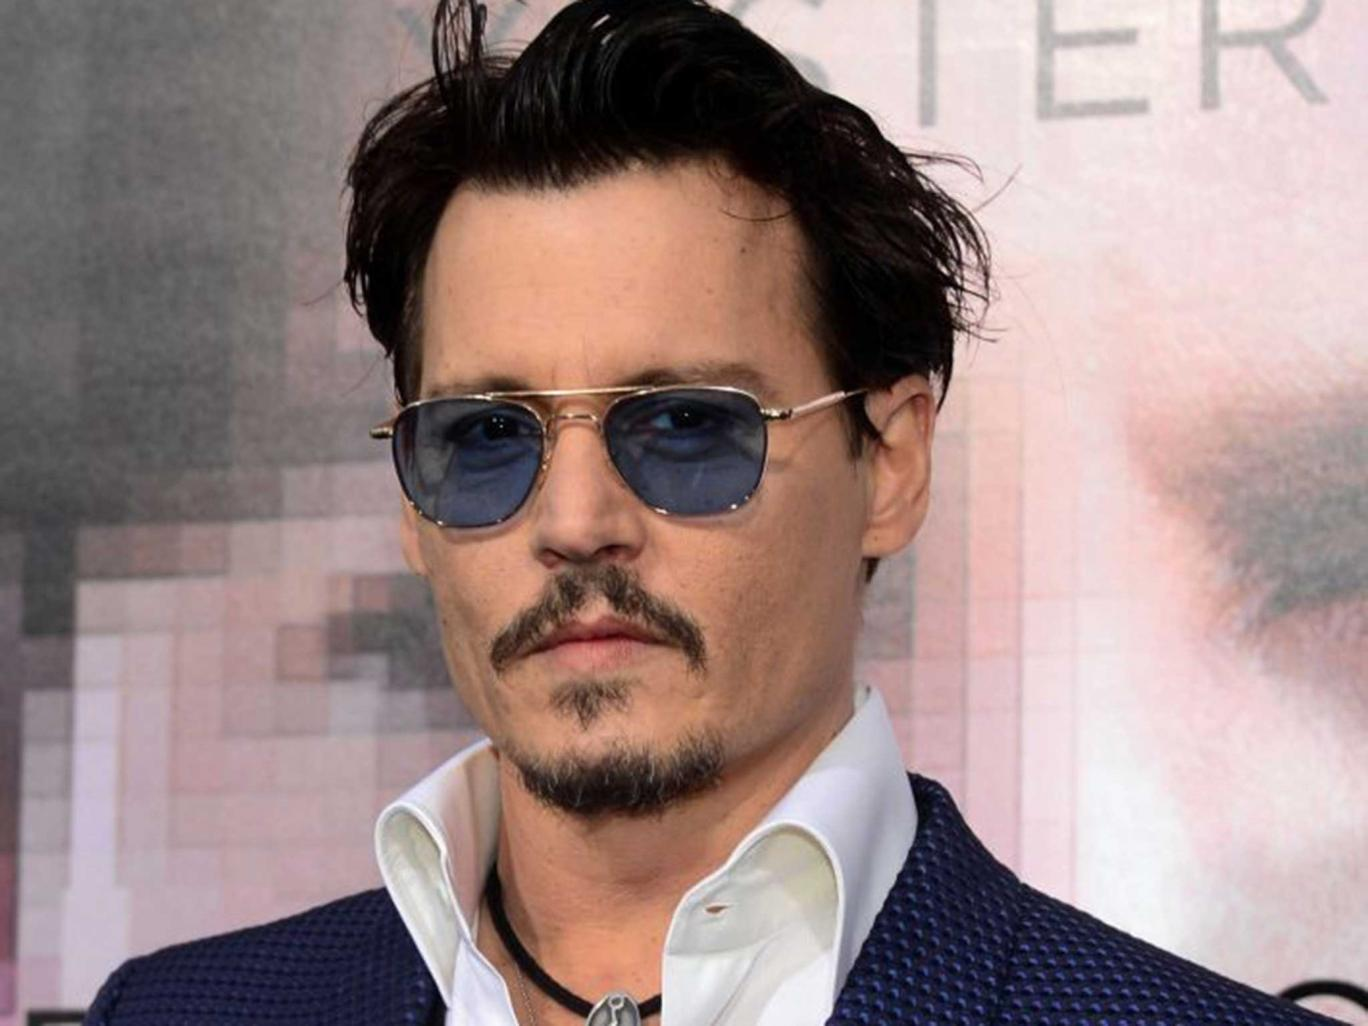 Johnny Depp | His Religion, Hobbies, Political Views